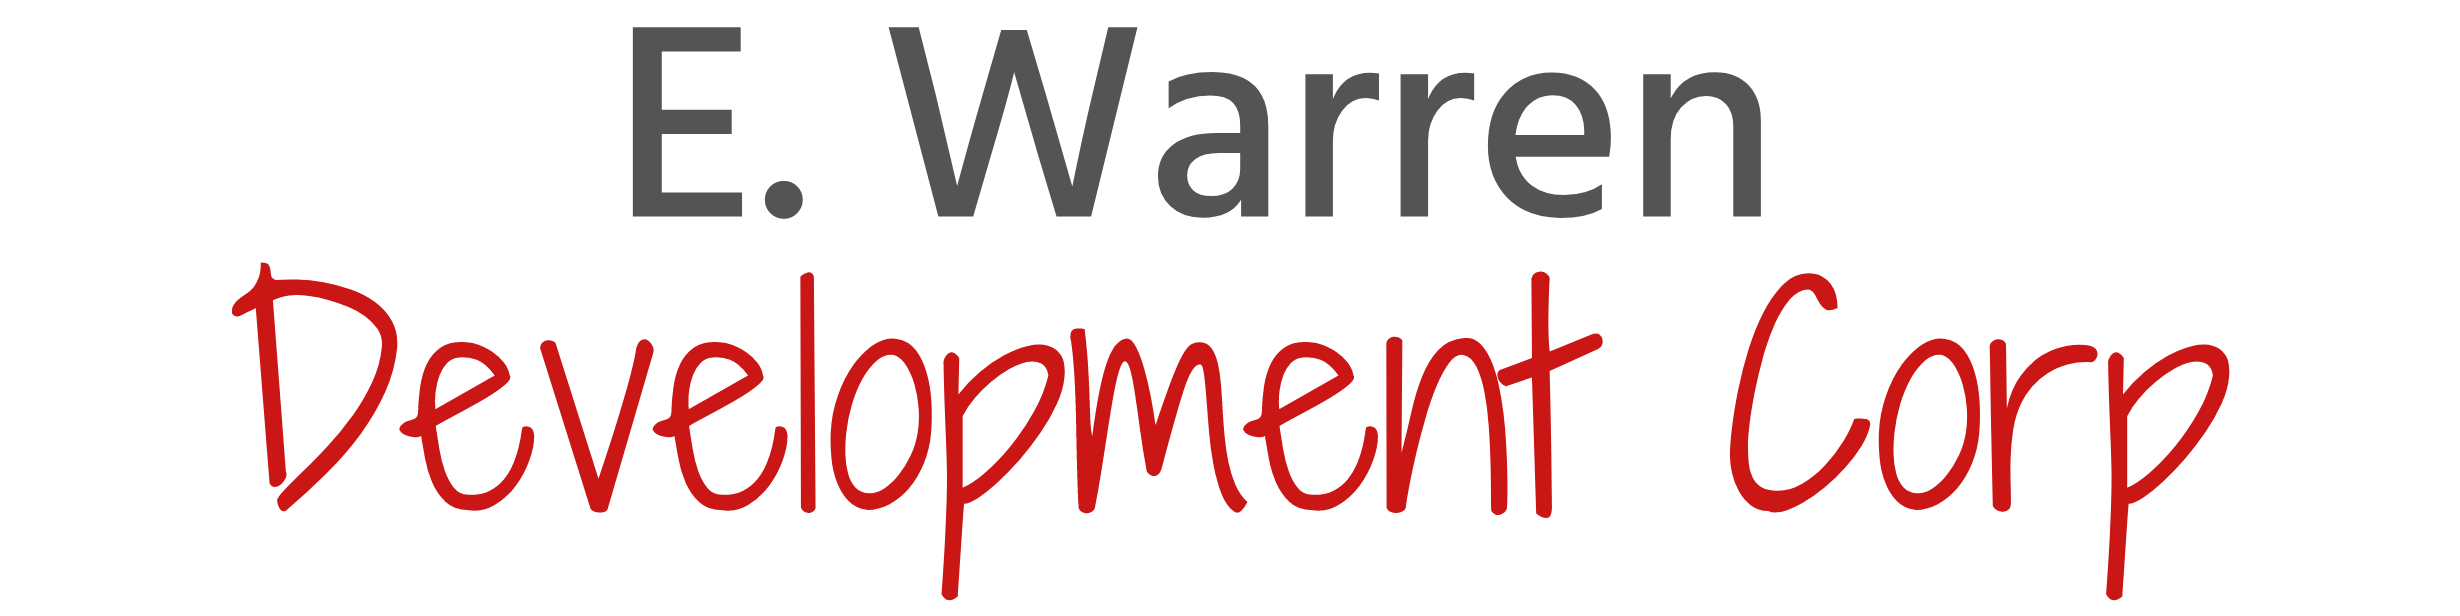 E Warren Development Corp